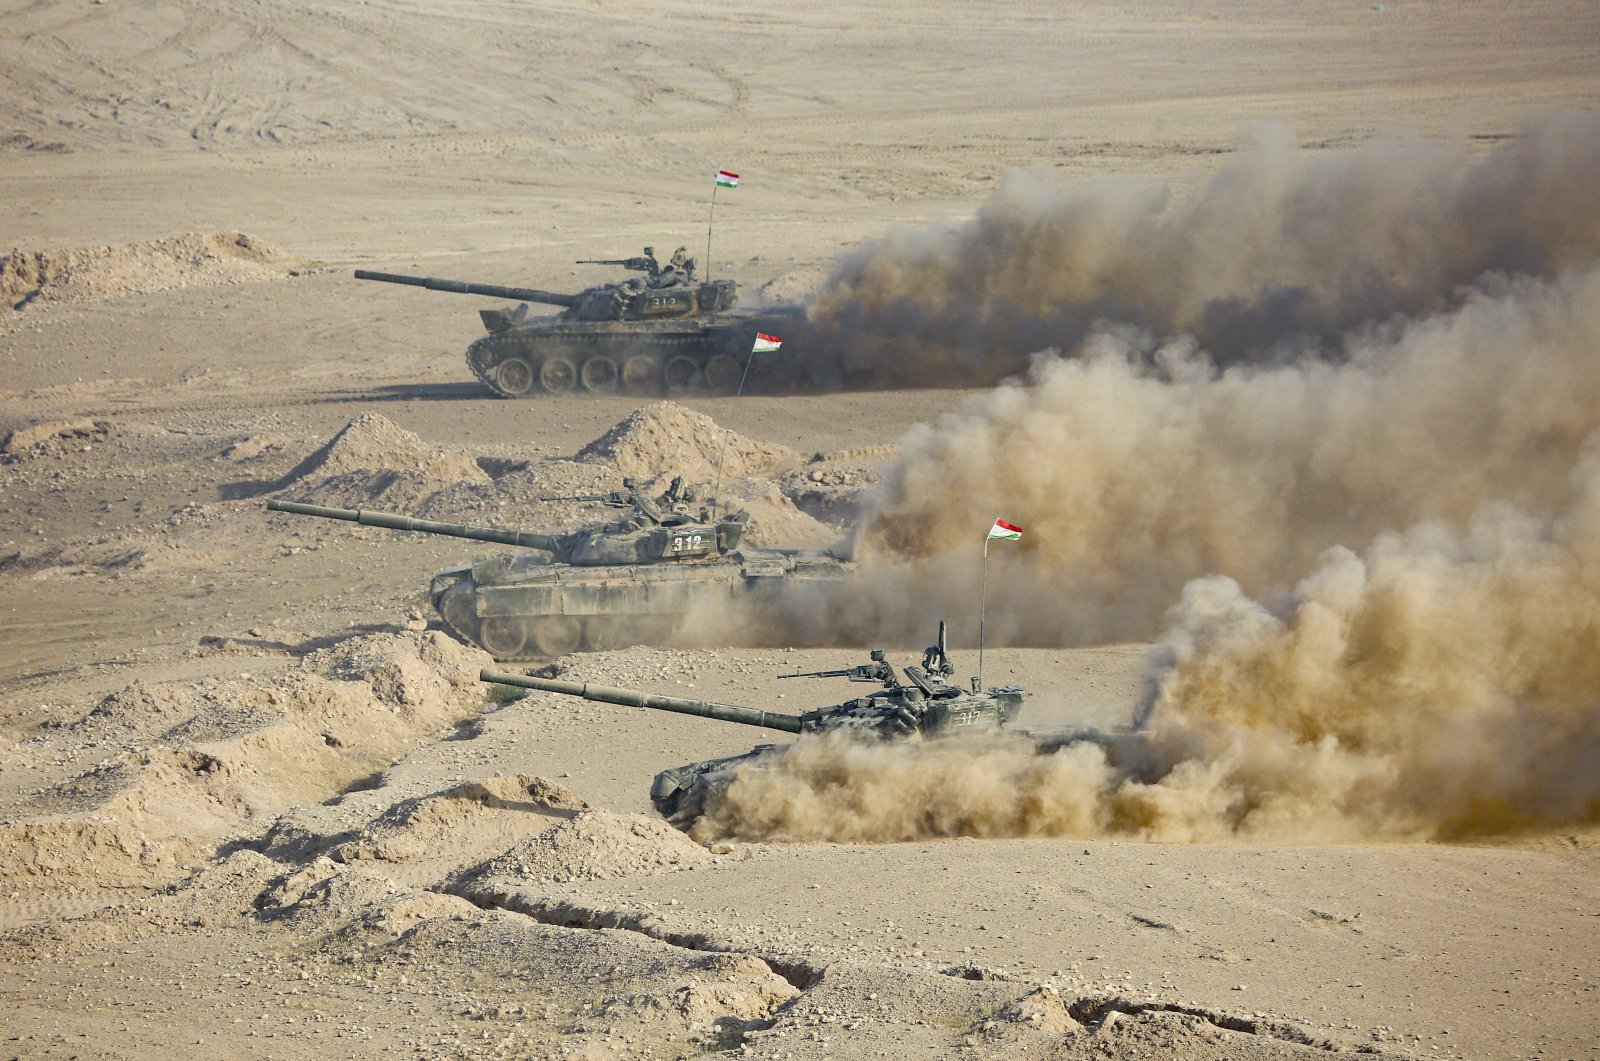 Tajikistan's tanks roll during joint military drills by Russia and Uzbekistan at Harb-Maidon firing range about 20 kilometers (about 12 miles) north of the Tajik border with Afghanistan, in Tajikistan, Aug. 10, 2021. (AP Photo)